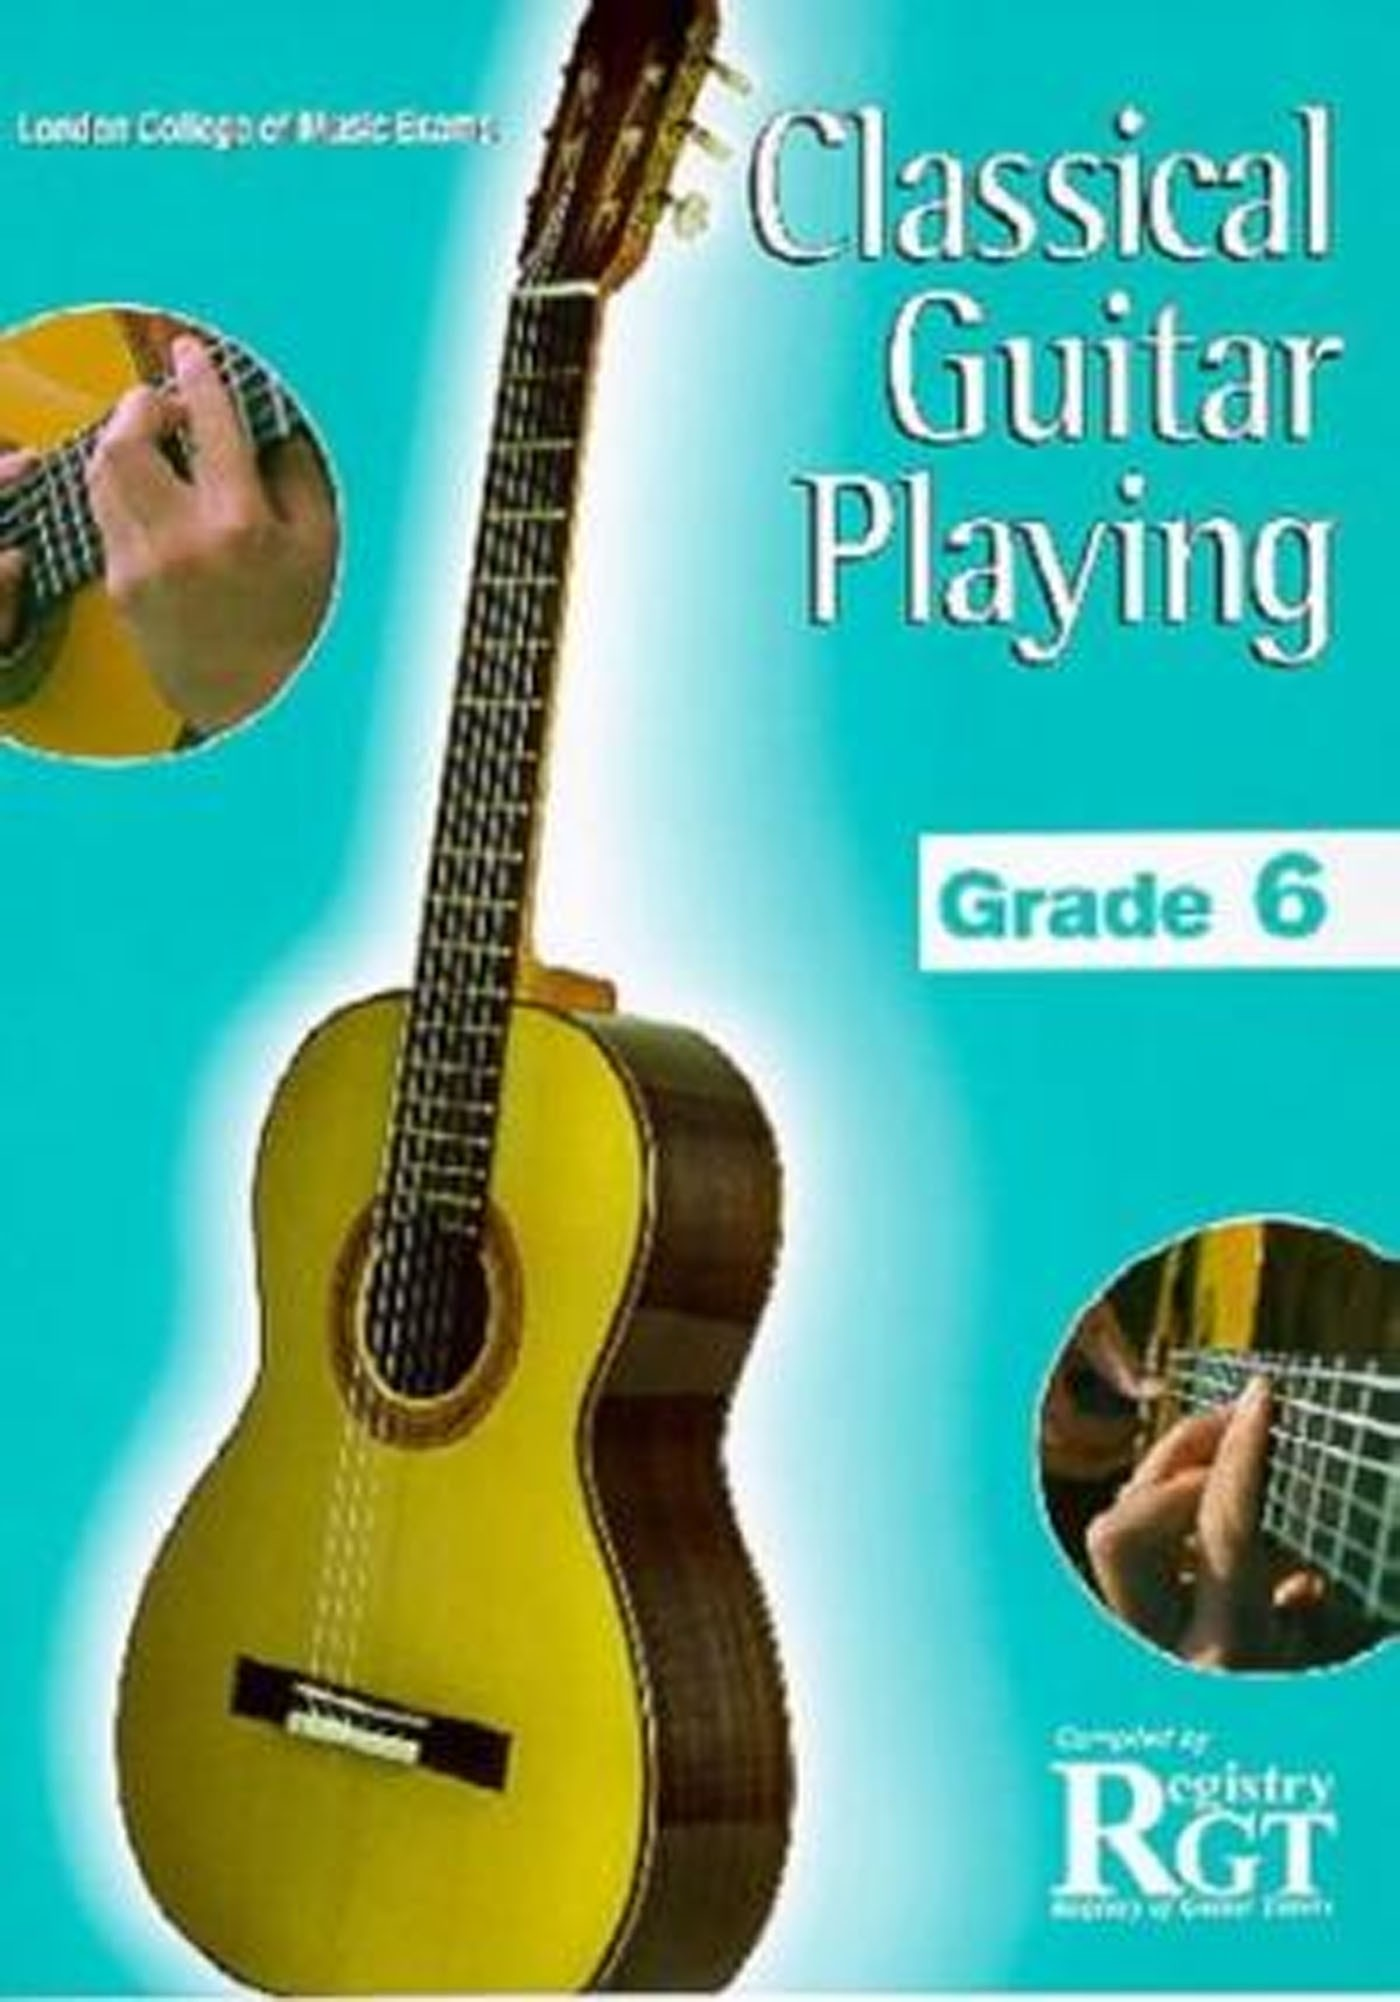 RGT LCM Classical Guitar Playing Grade 6 Book S94